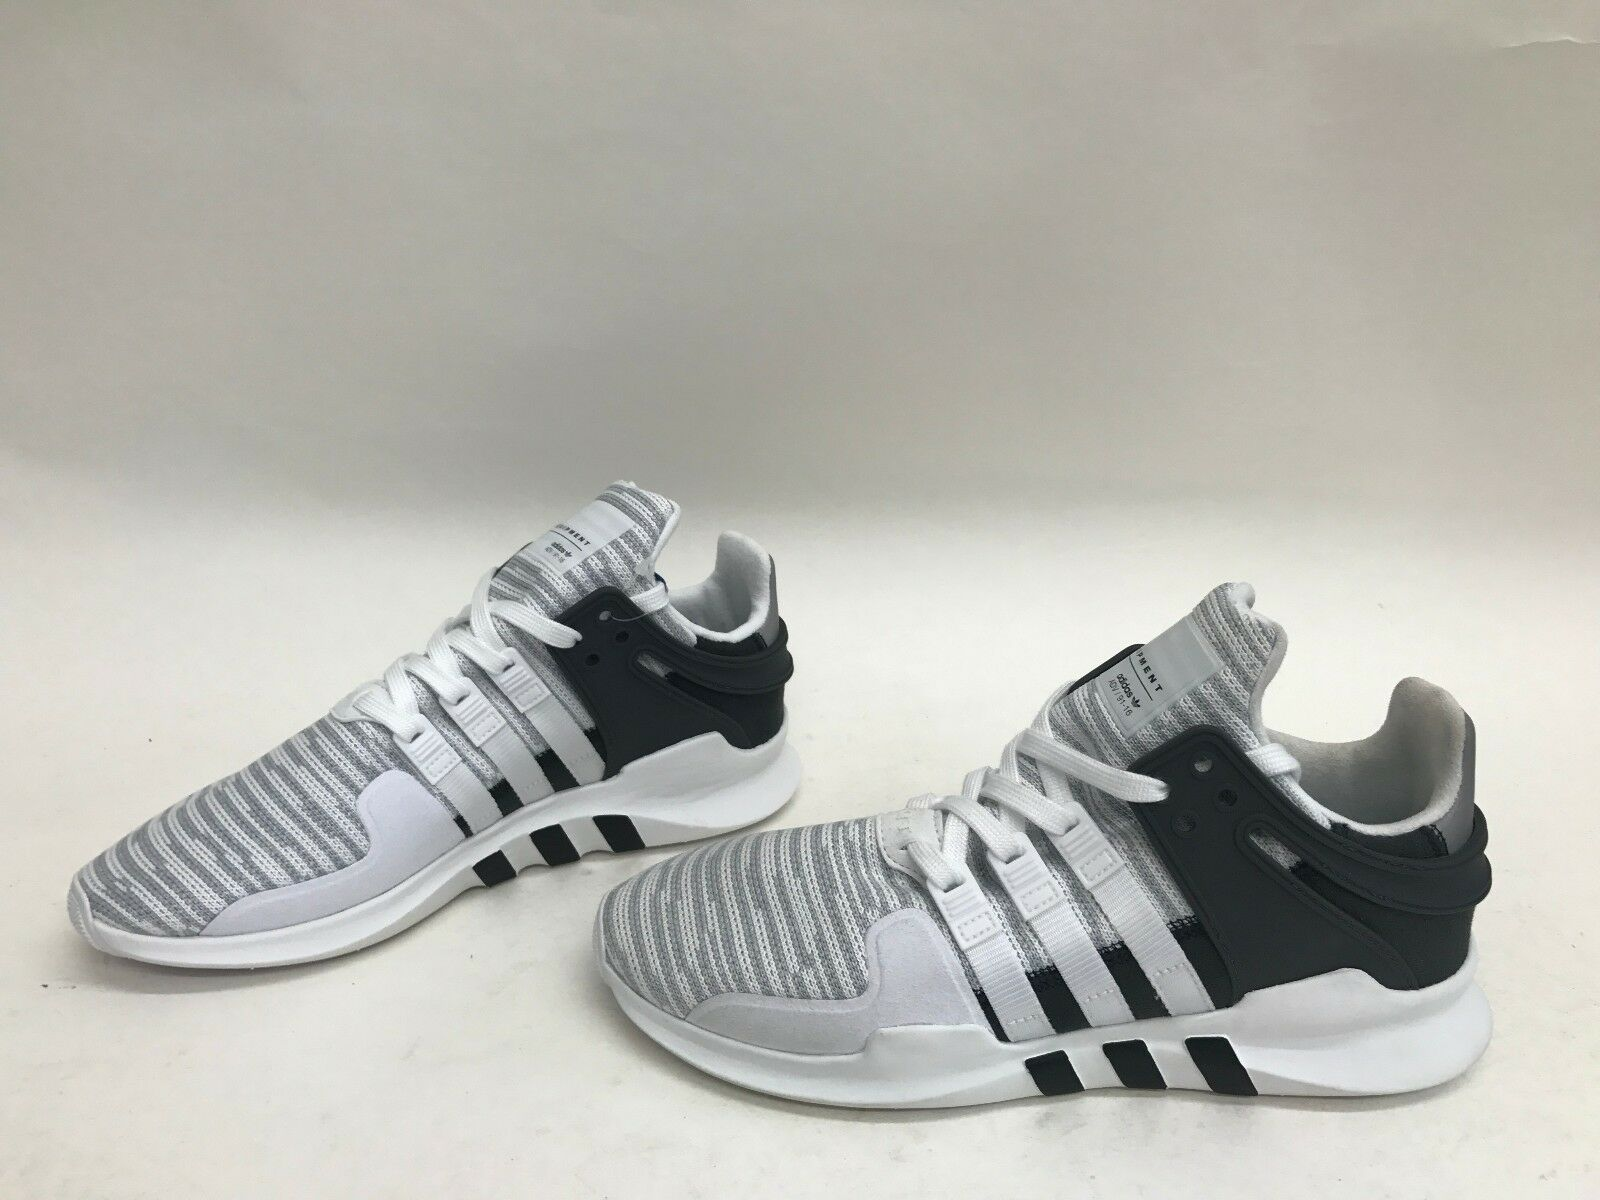 NIB MENS SIZE 8 ADIDAS EQT SUPPORT ADV RUNNING SNEAKERS BB1296